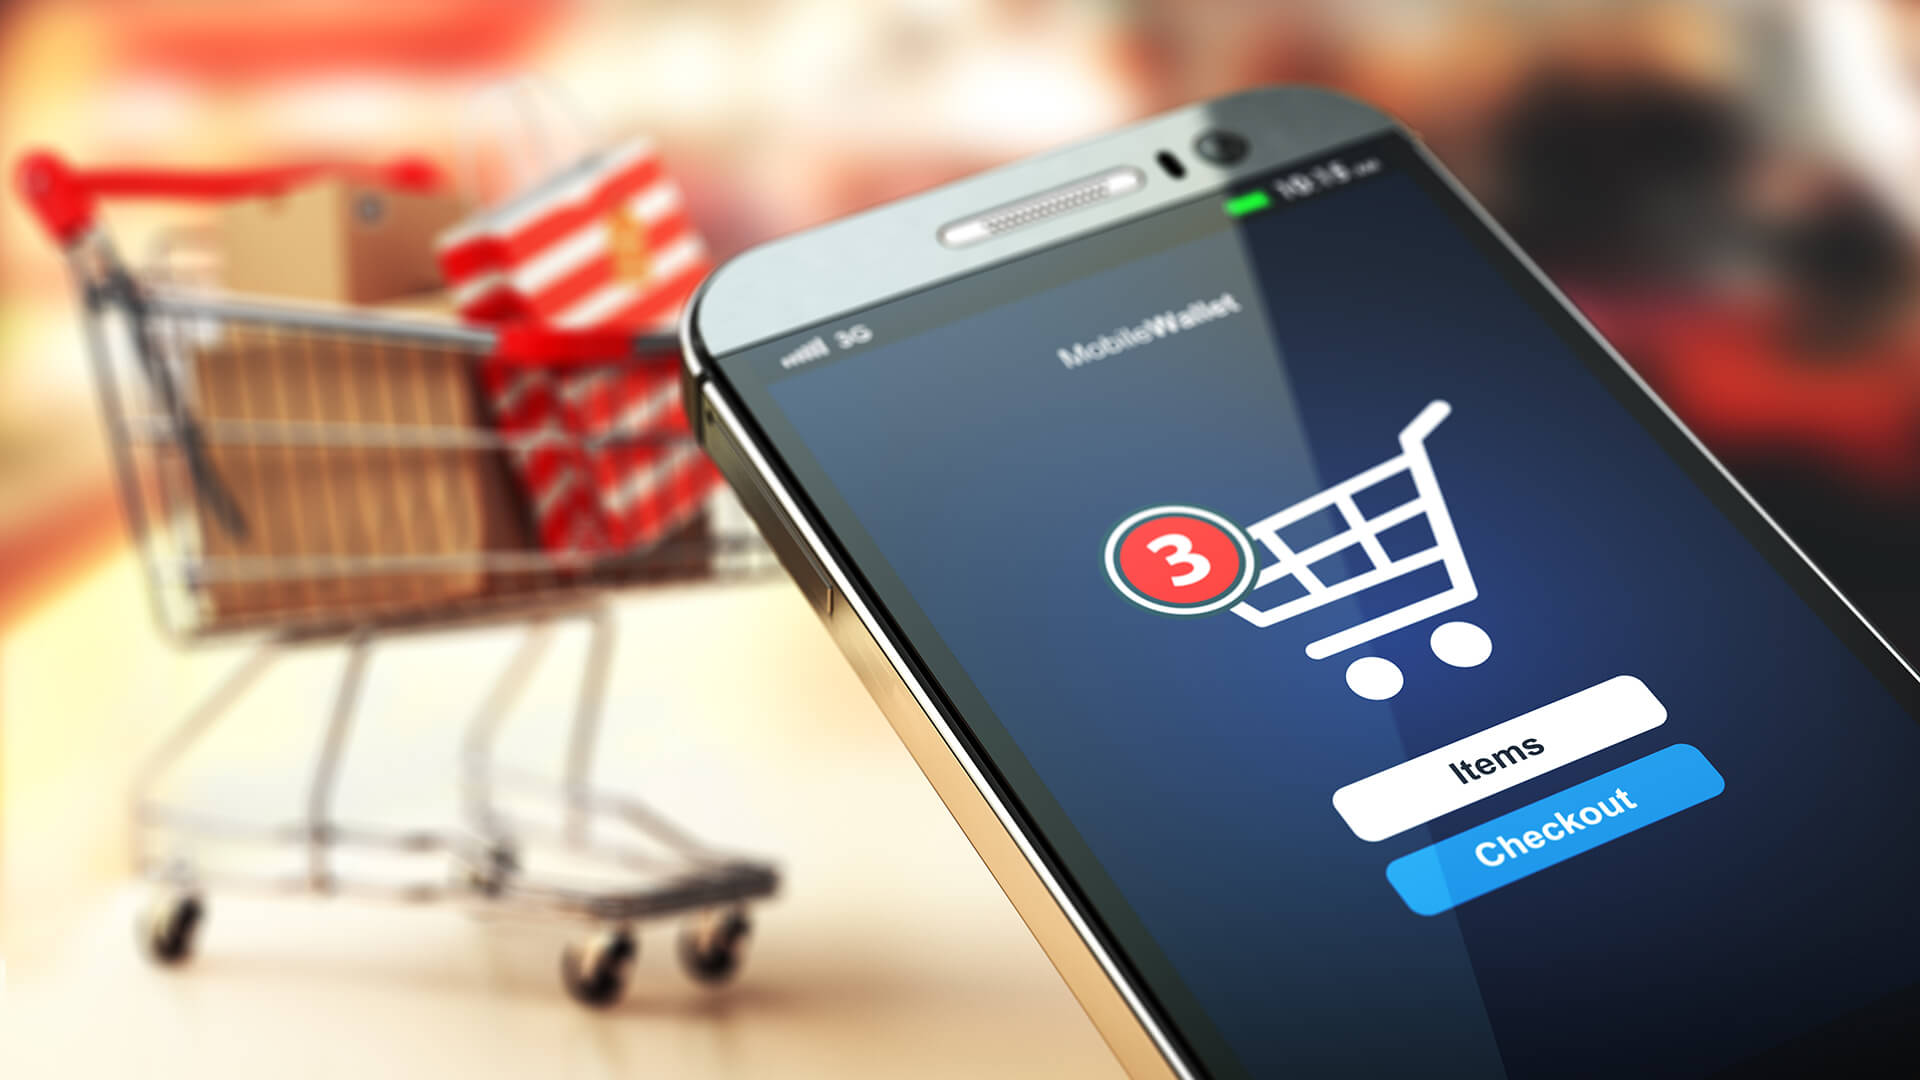 mCommerce eCommerce mobile smartphone retail